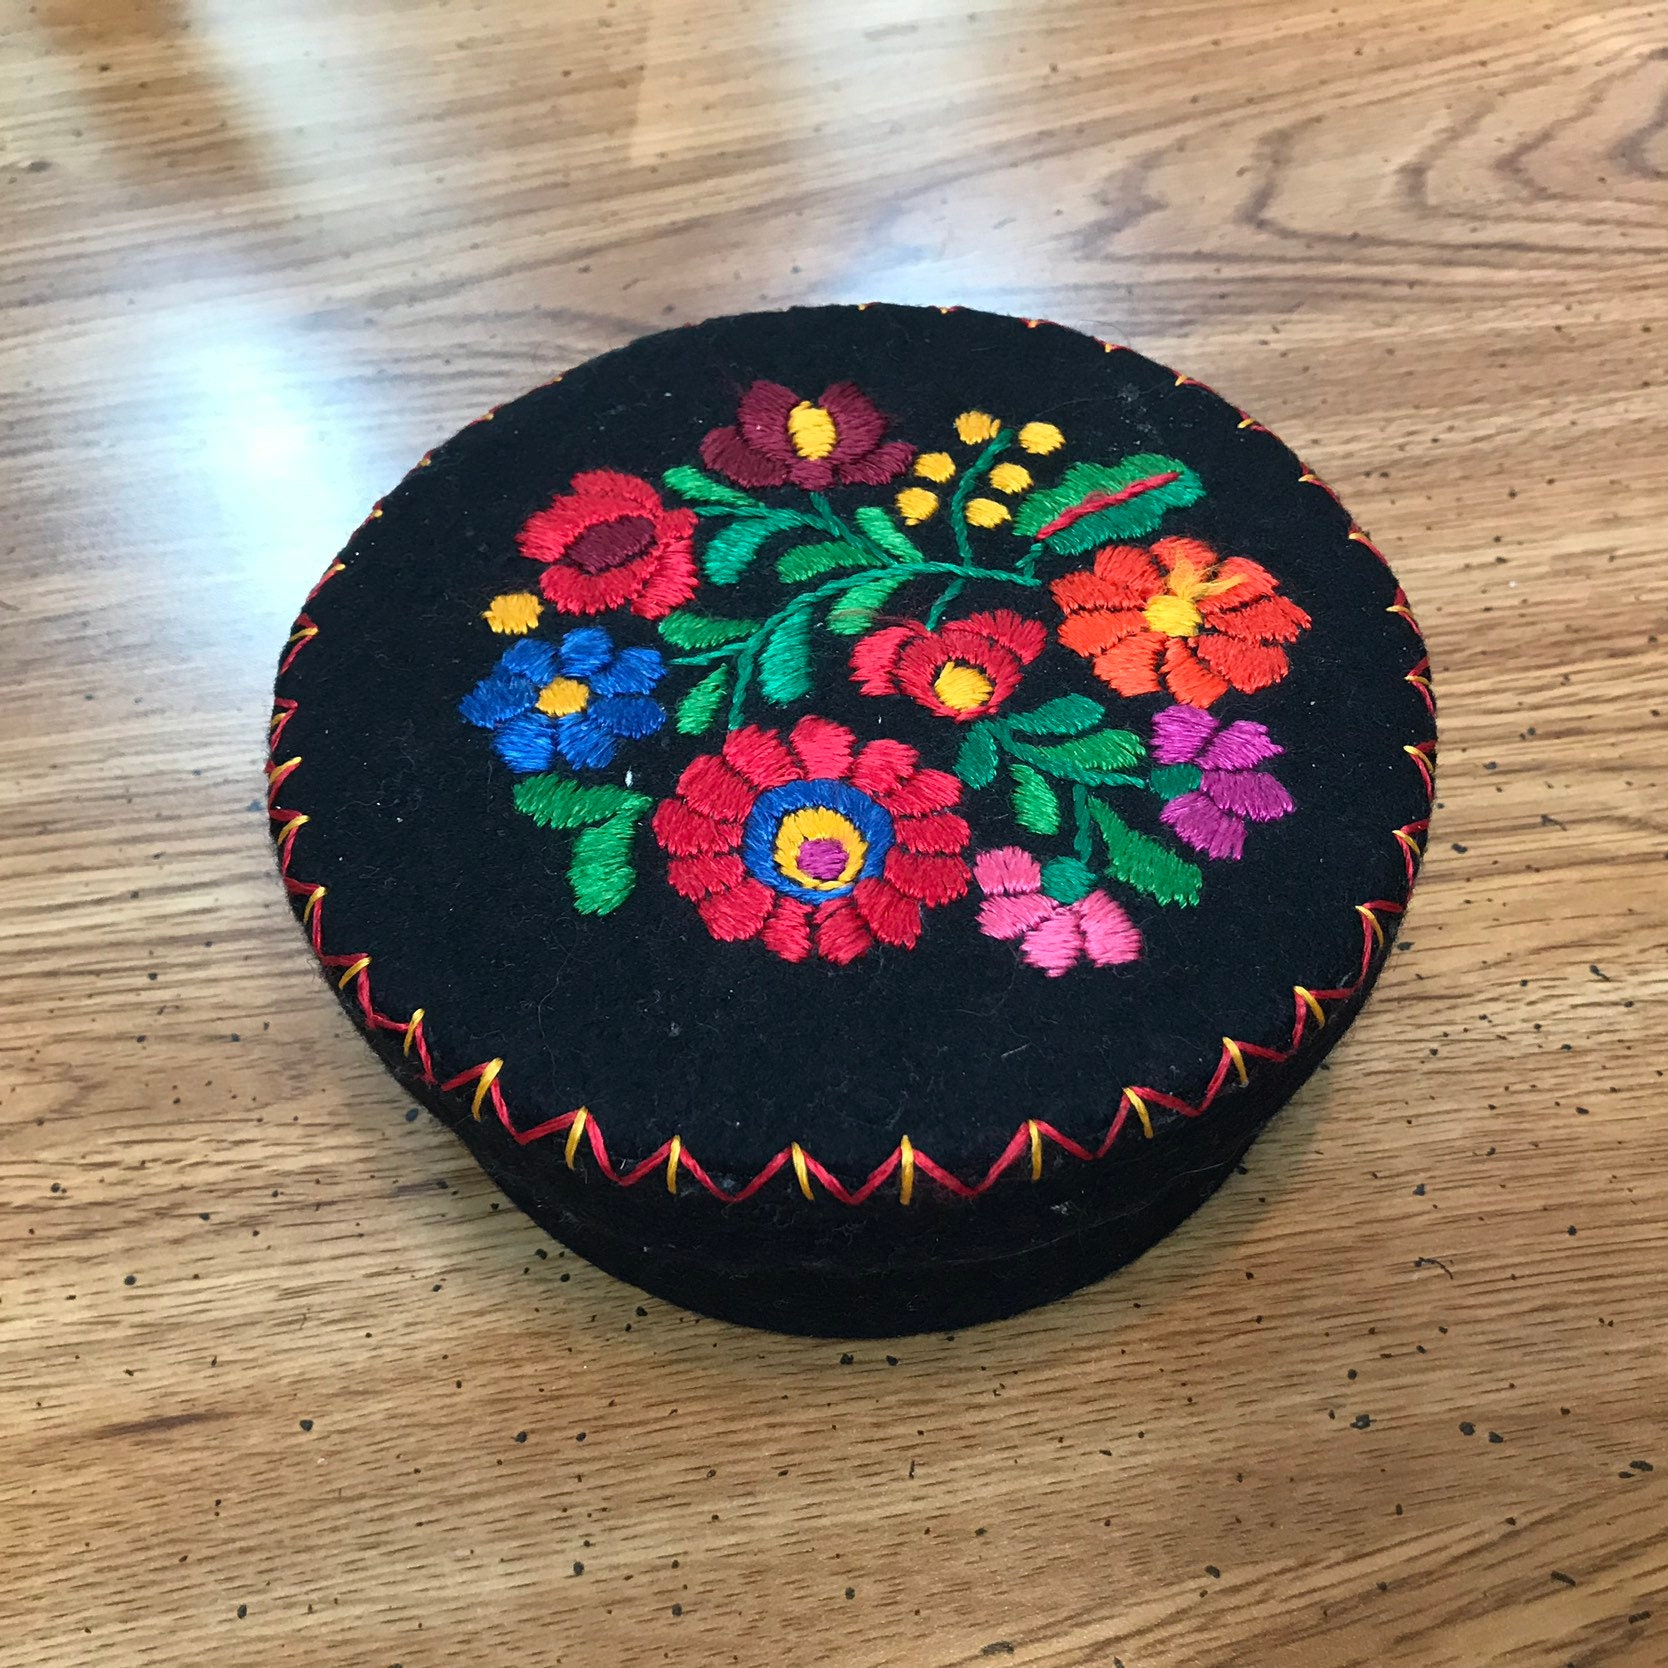 Vintage 1960s Floral Embroidery Embroidered Felted Wool Trinket Jewelry Box